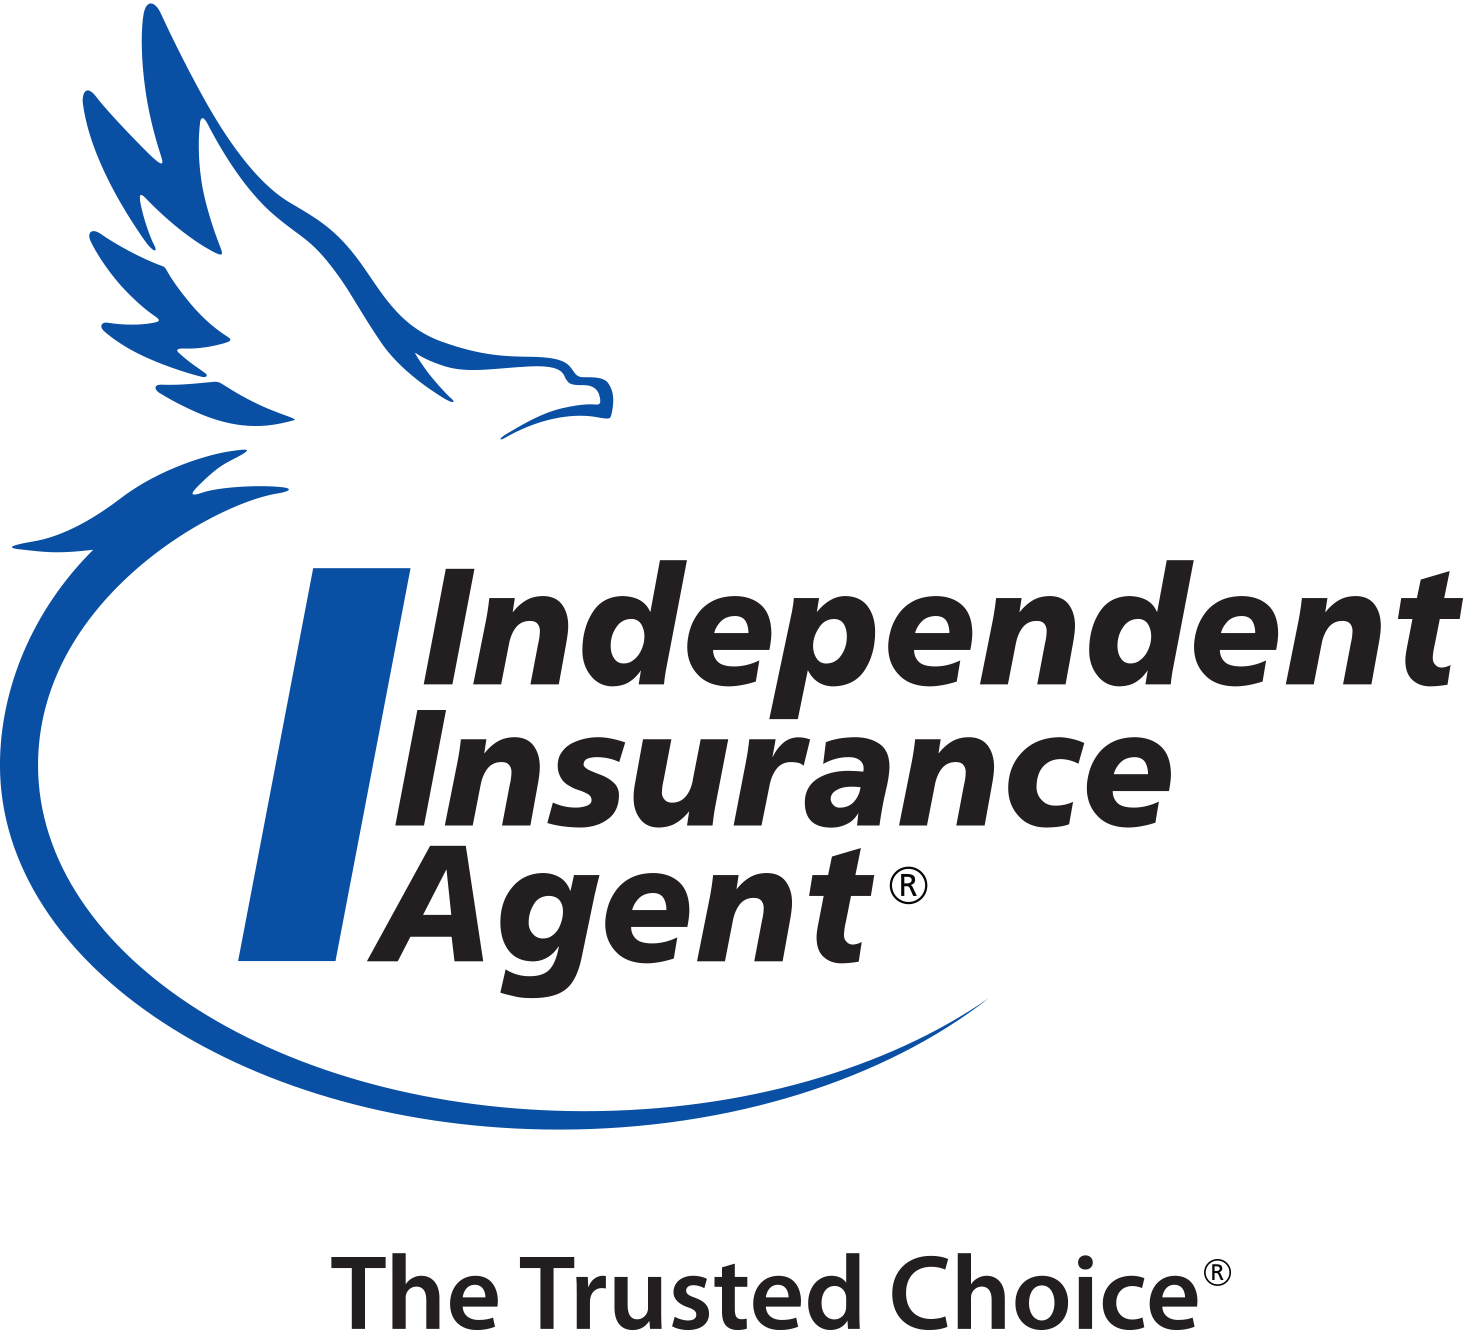 homeowners insurance home insurance quote local agent rh okstatewide com Independent Insurance Agent Logo PDF Independent Insurance Agent Logo Bird